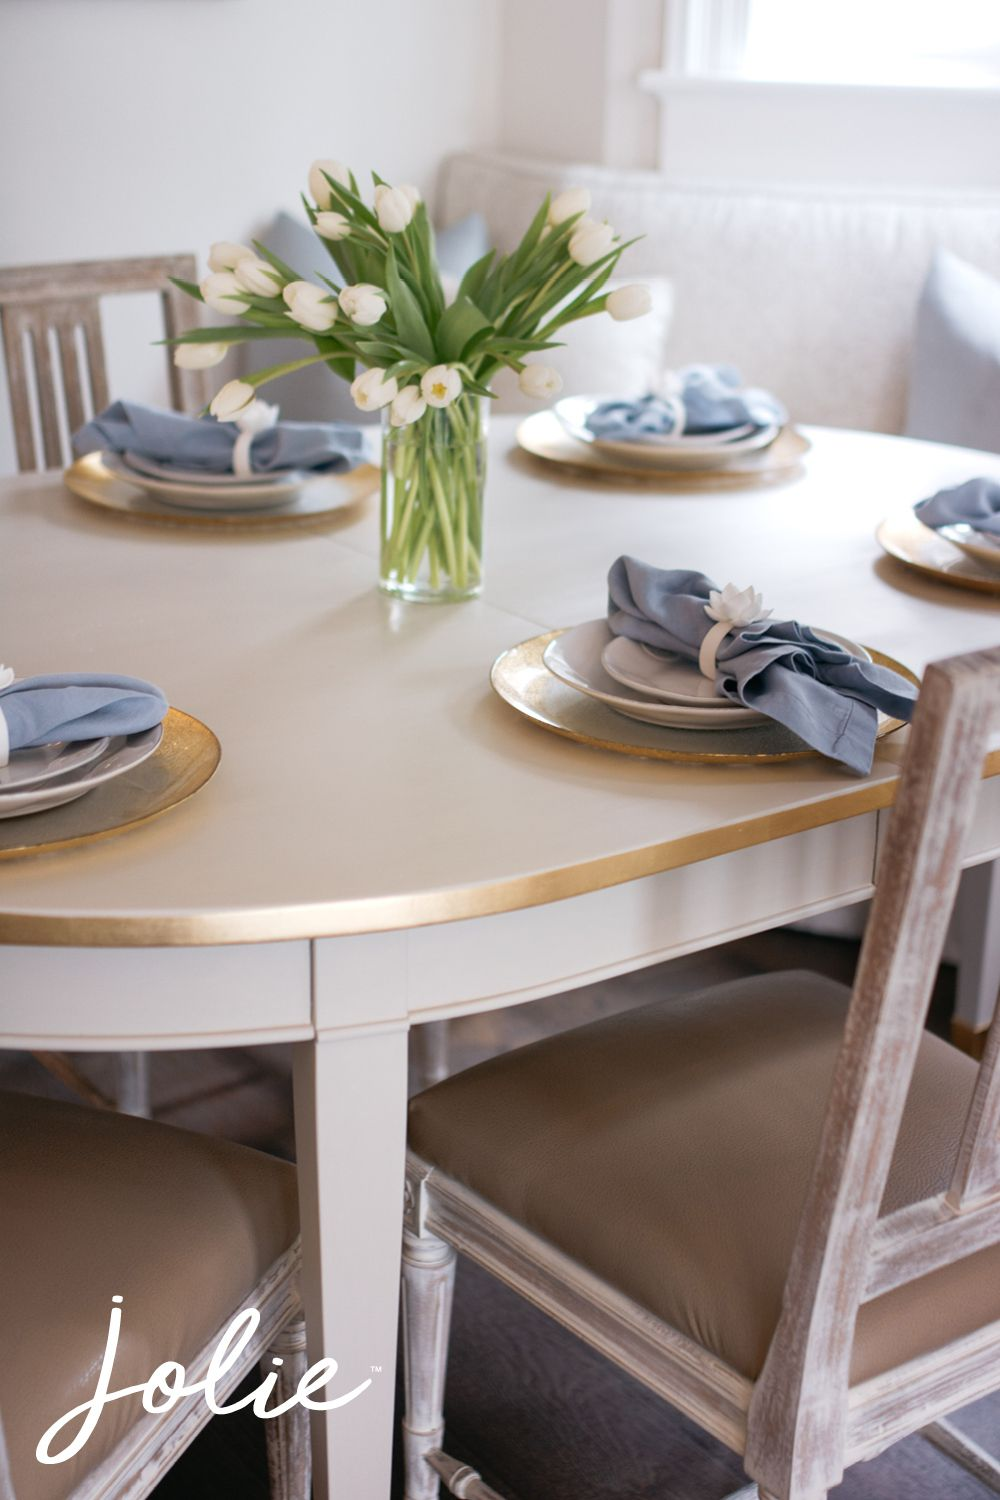 Transform your dining room table with Jolie Paint and Metal Leaf for a show-stopping tablescape when you entertain guests. Featured: Jolie Paint in Swedish Grey with Gold Metal Leaf details.   #joliepaint #joliehome #joliebyme #makelifebeautiful #jolie #mattepaint #mattpaint #furniturepaint #furnituremakeover #furniturerehab #furnitureupdate #creativehappylife #interiordesigninspo #inspo #colorinspiration #paintedfurniture #beforeandafter #furniturepaint #paintedtable #diyfurniture #tablescape